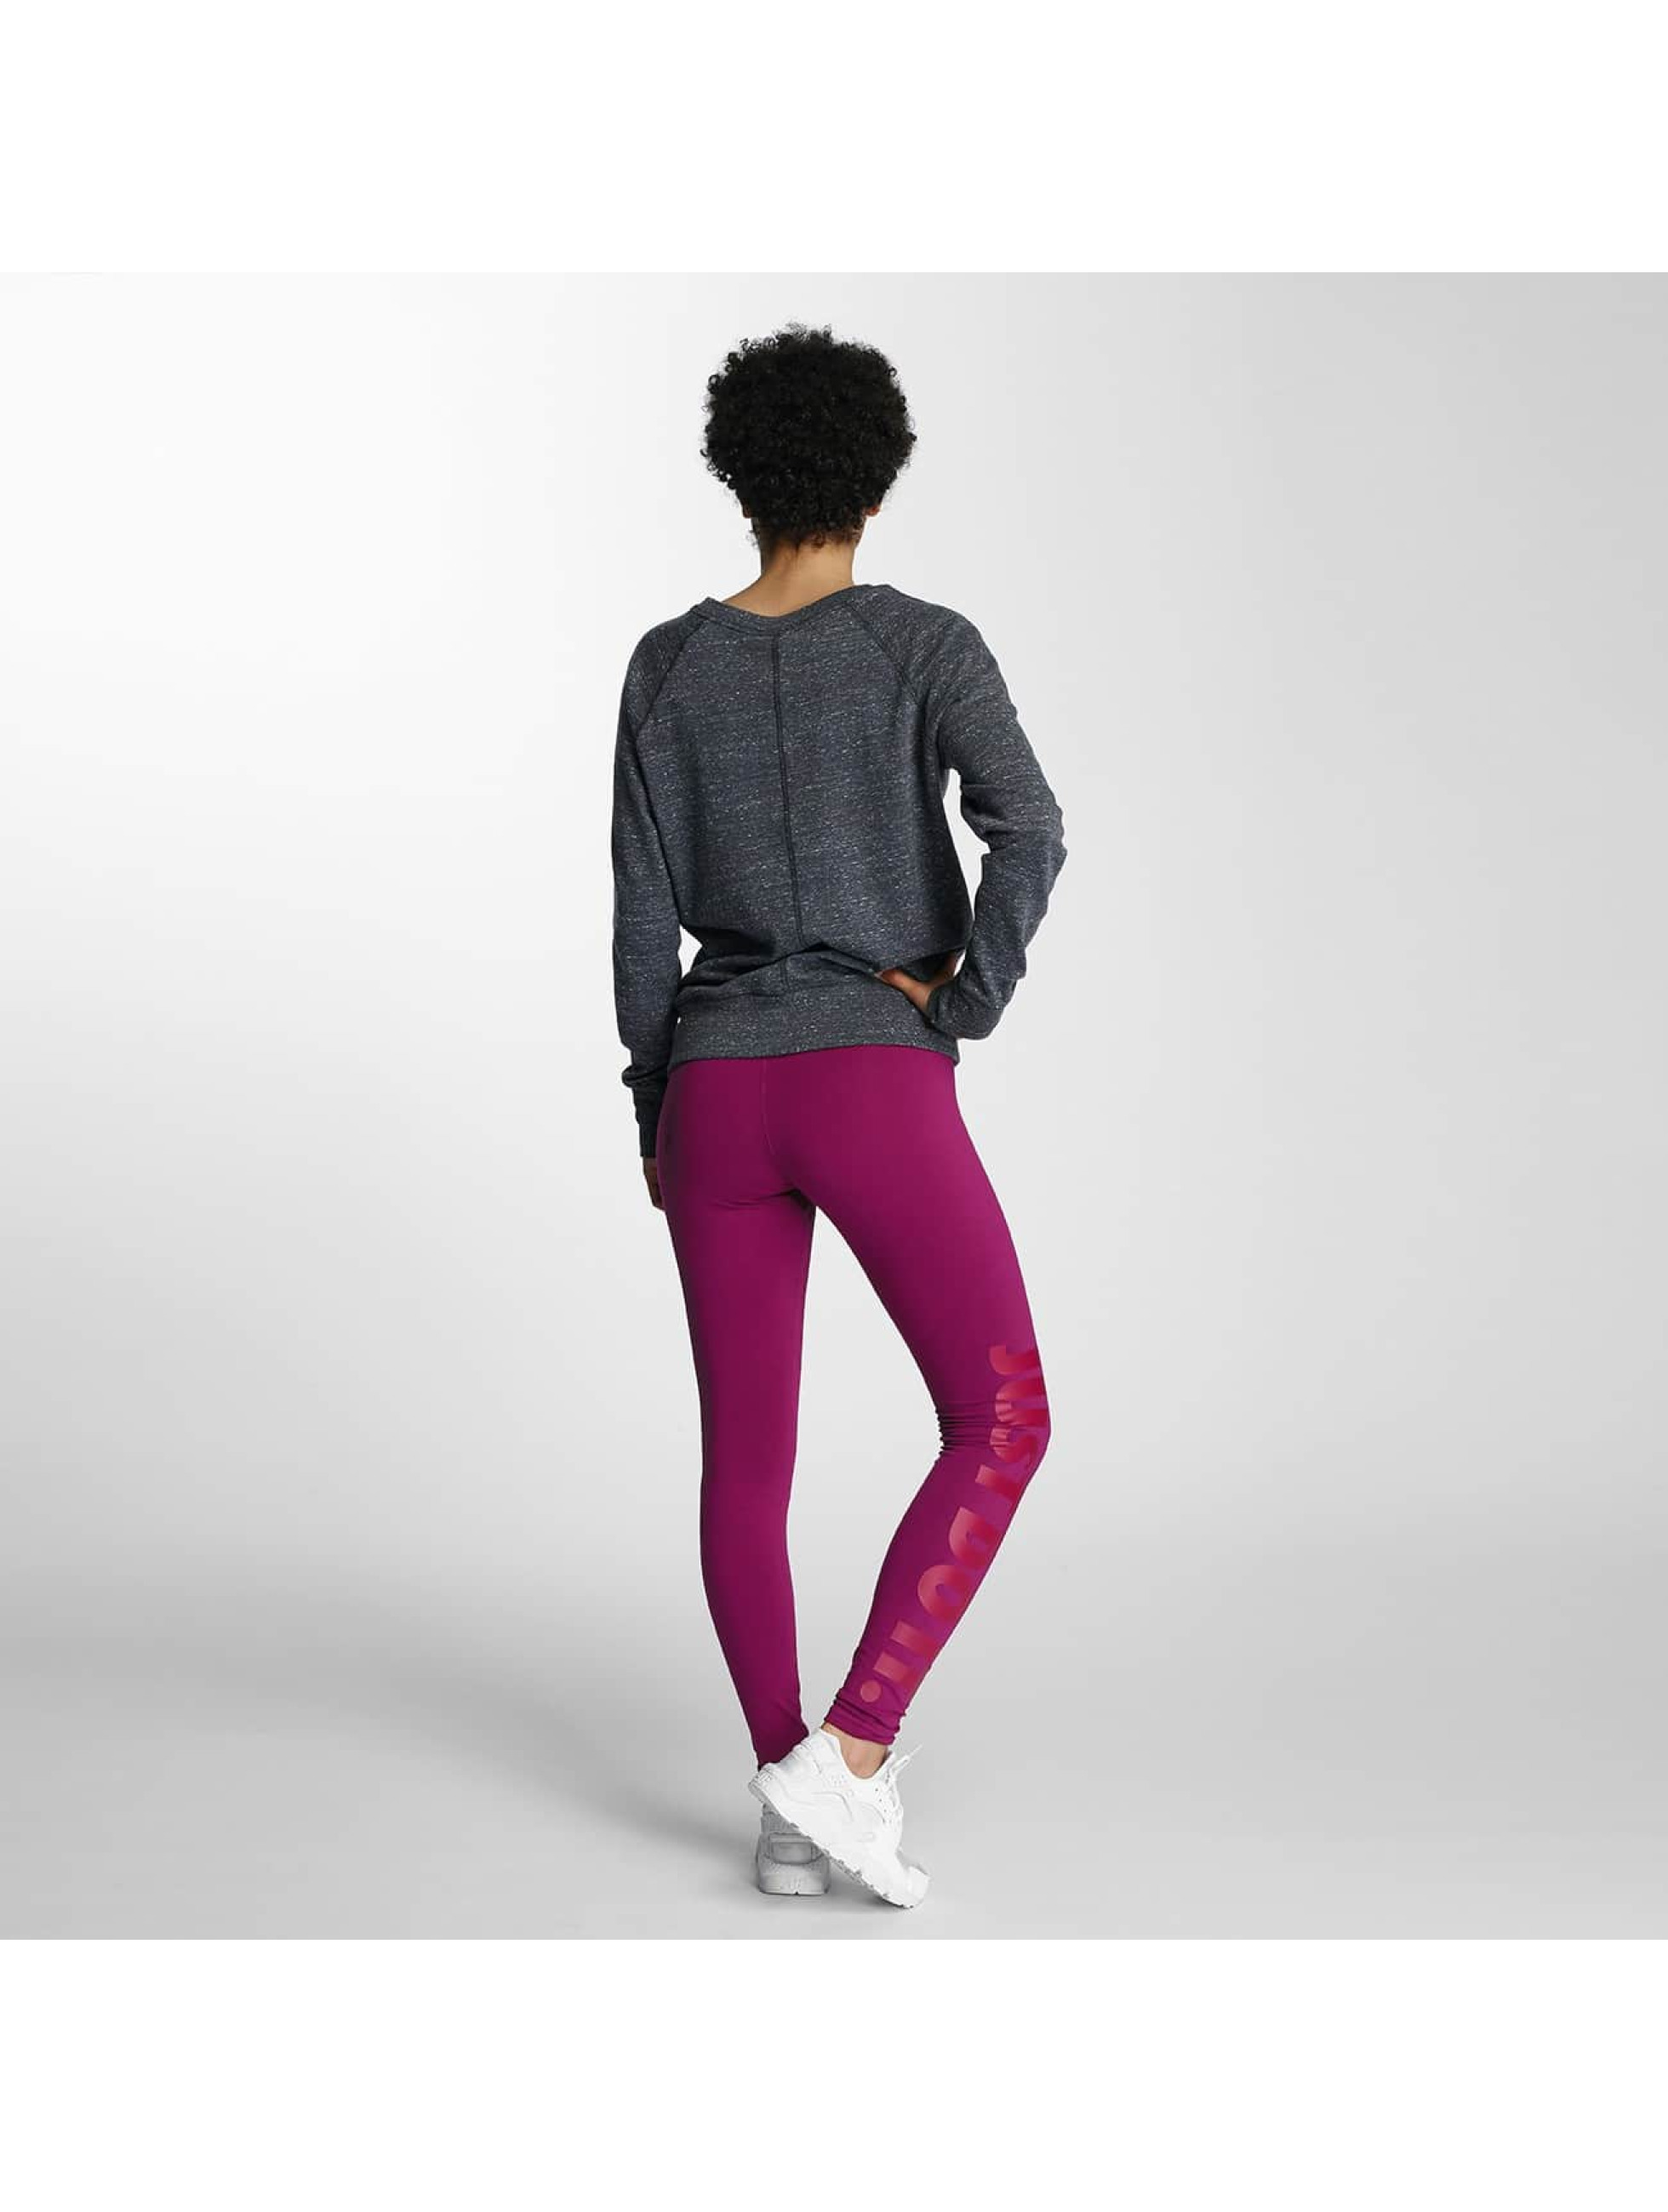 nike broek legging legasee just do it in pink 308568